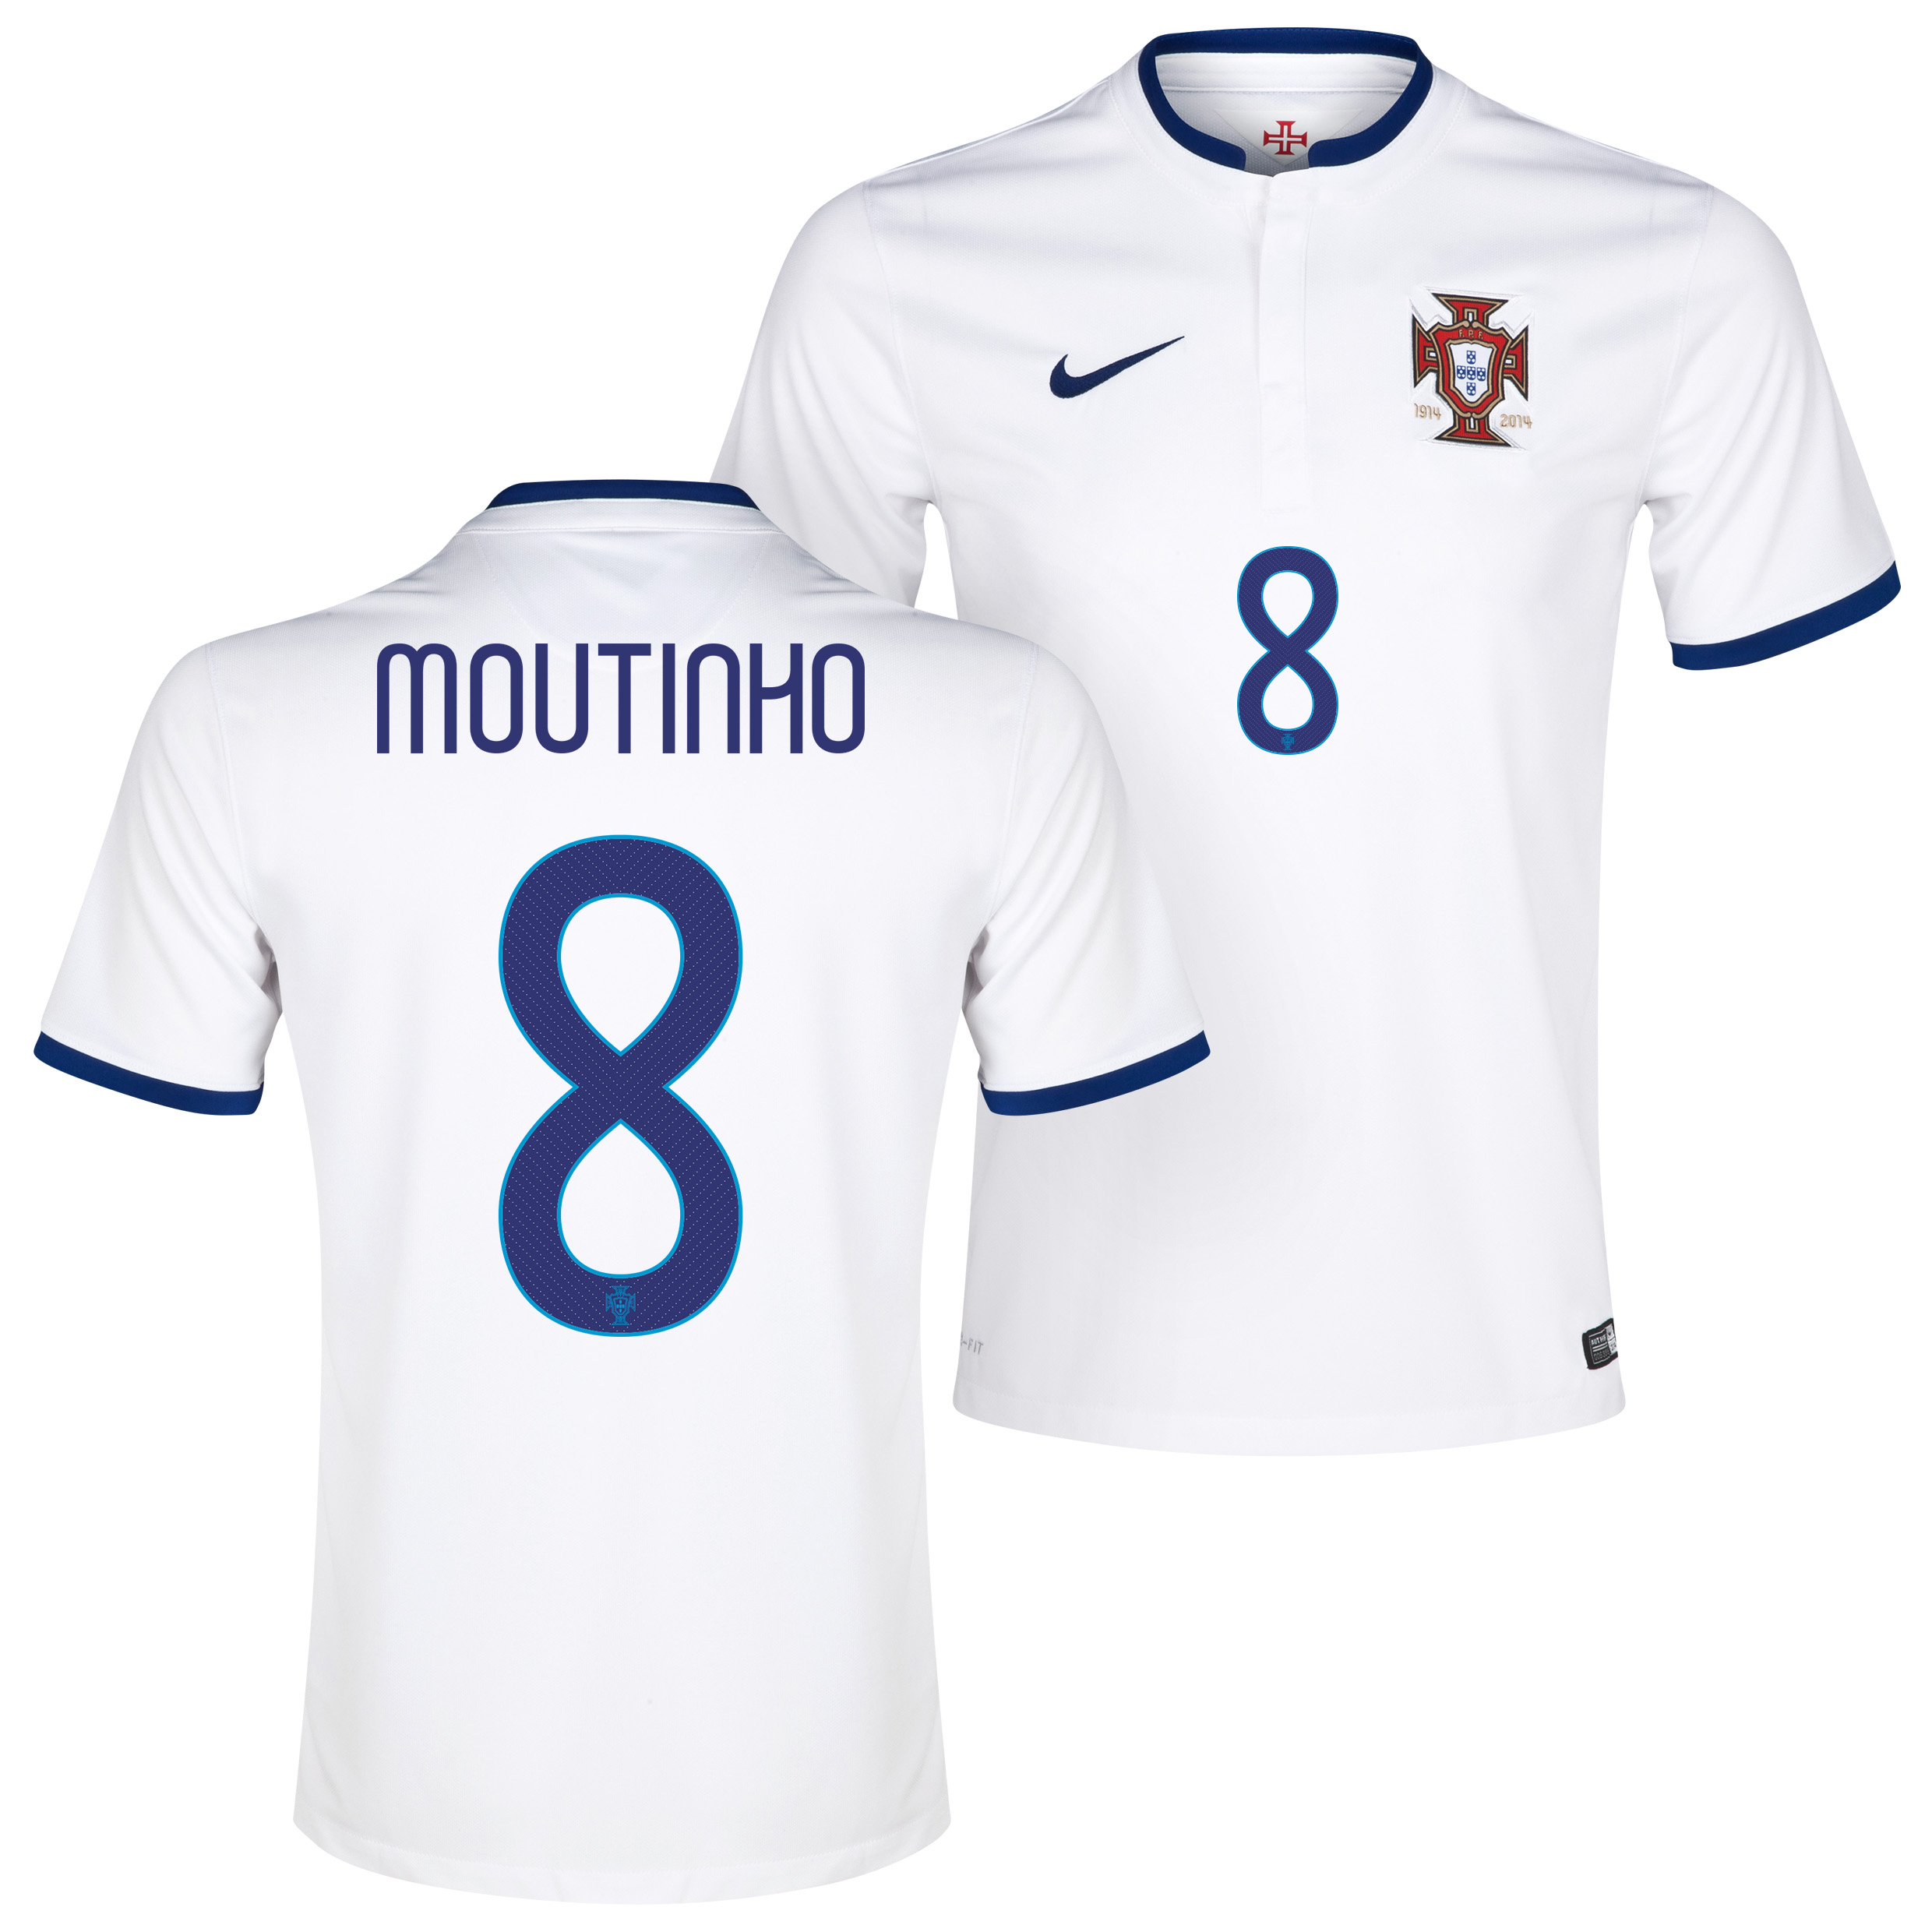 Portugal Away Shirt 2014/15 White with Moutinho 8 printing